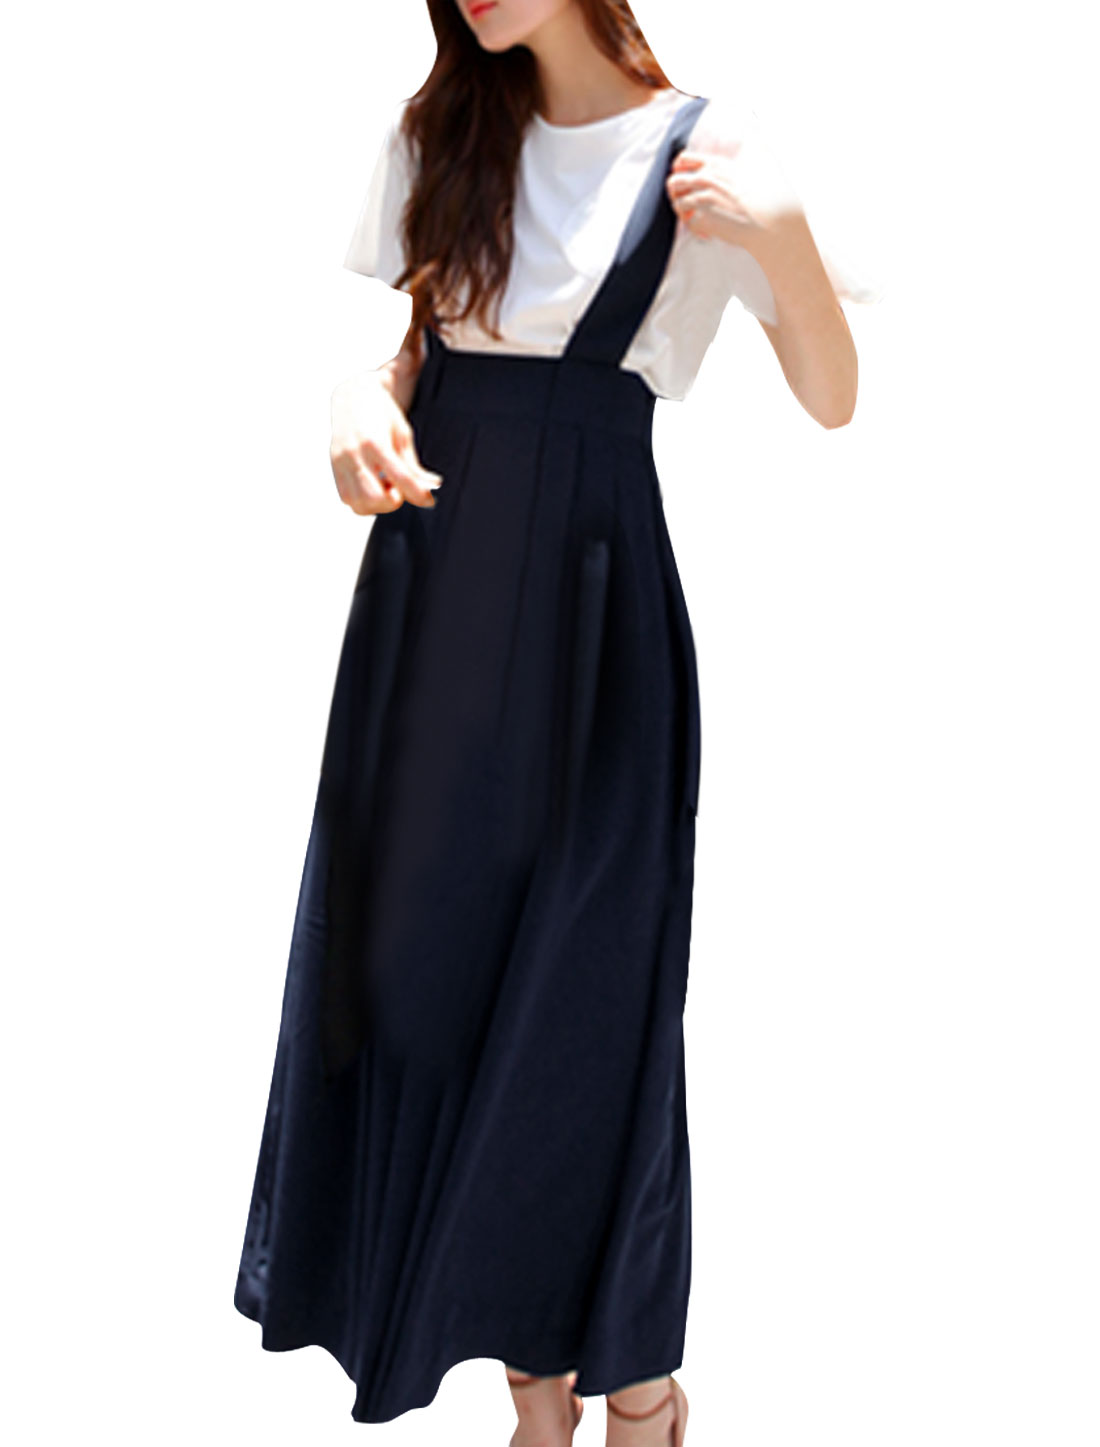 Lady Dark Blue Hidden Zipper Side Pleated Adjustable Suspender Skirt S